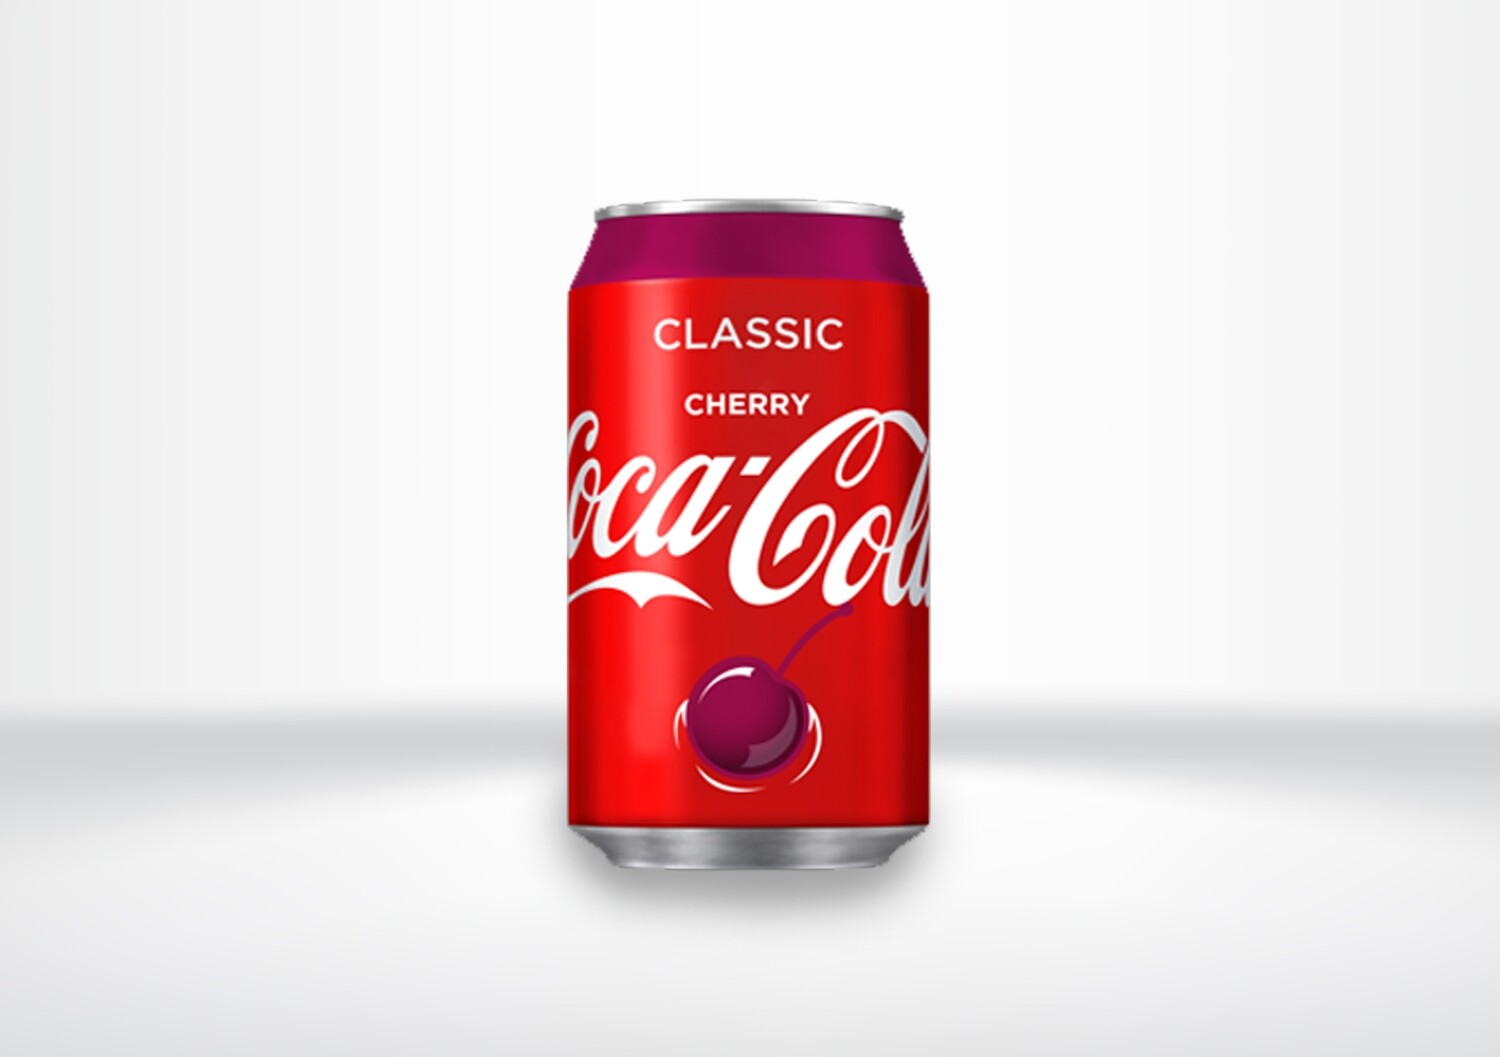 **GB** Cherry Coke Cans